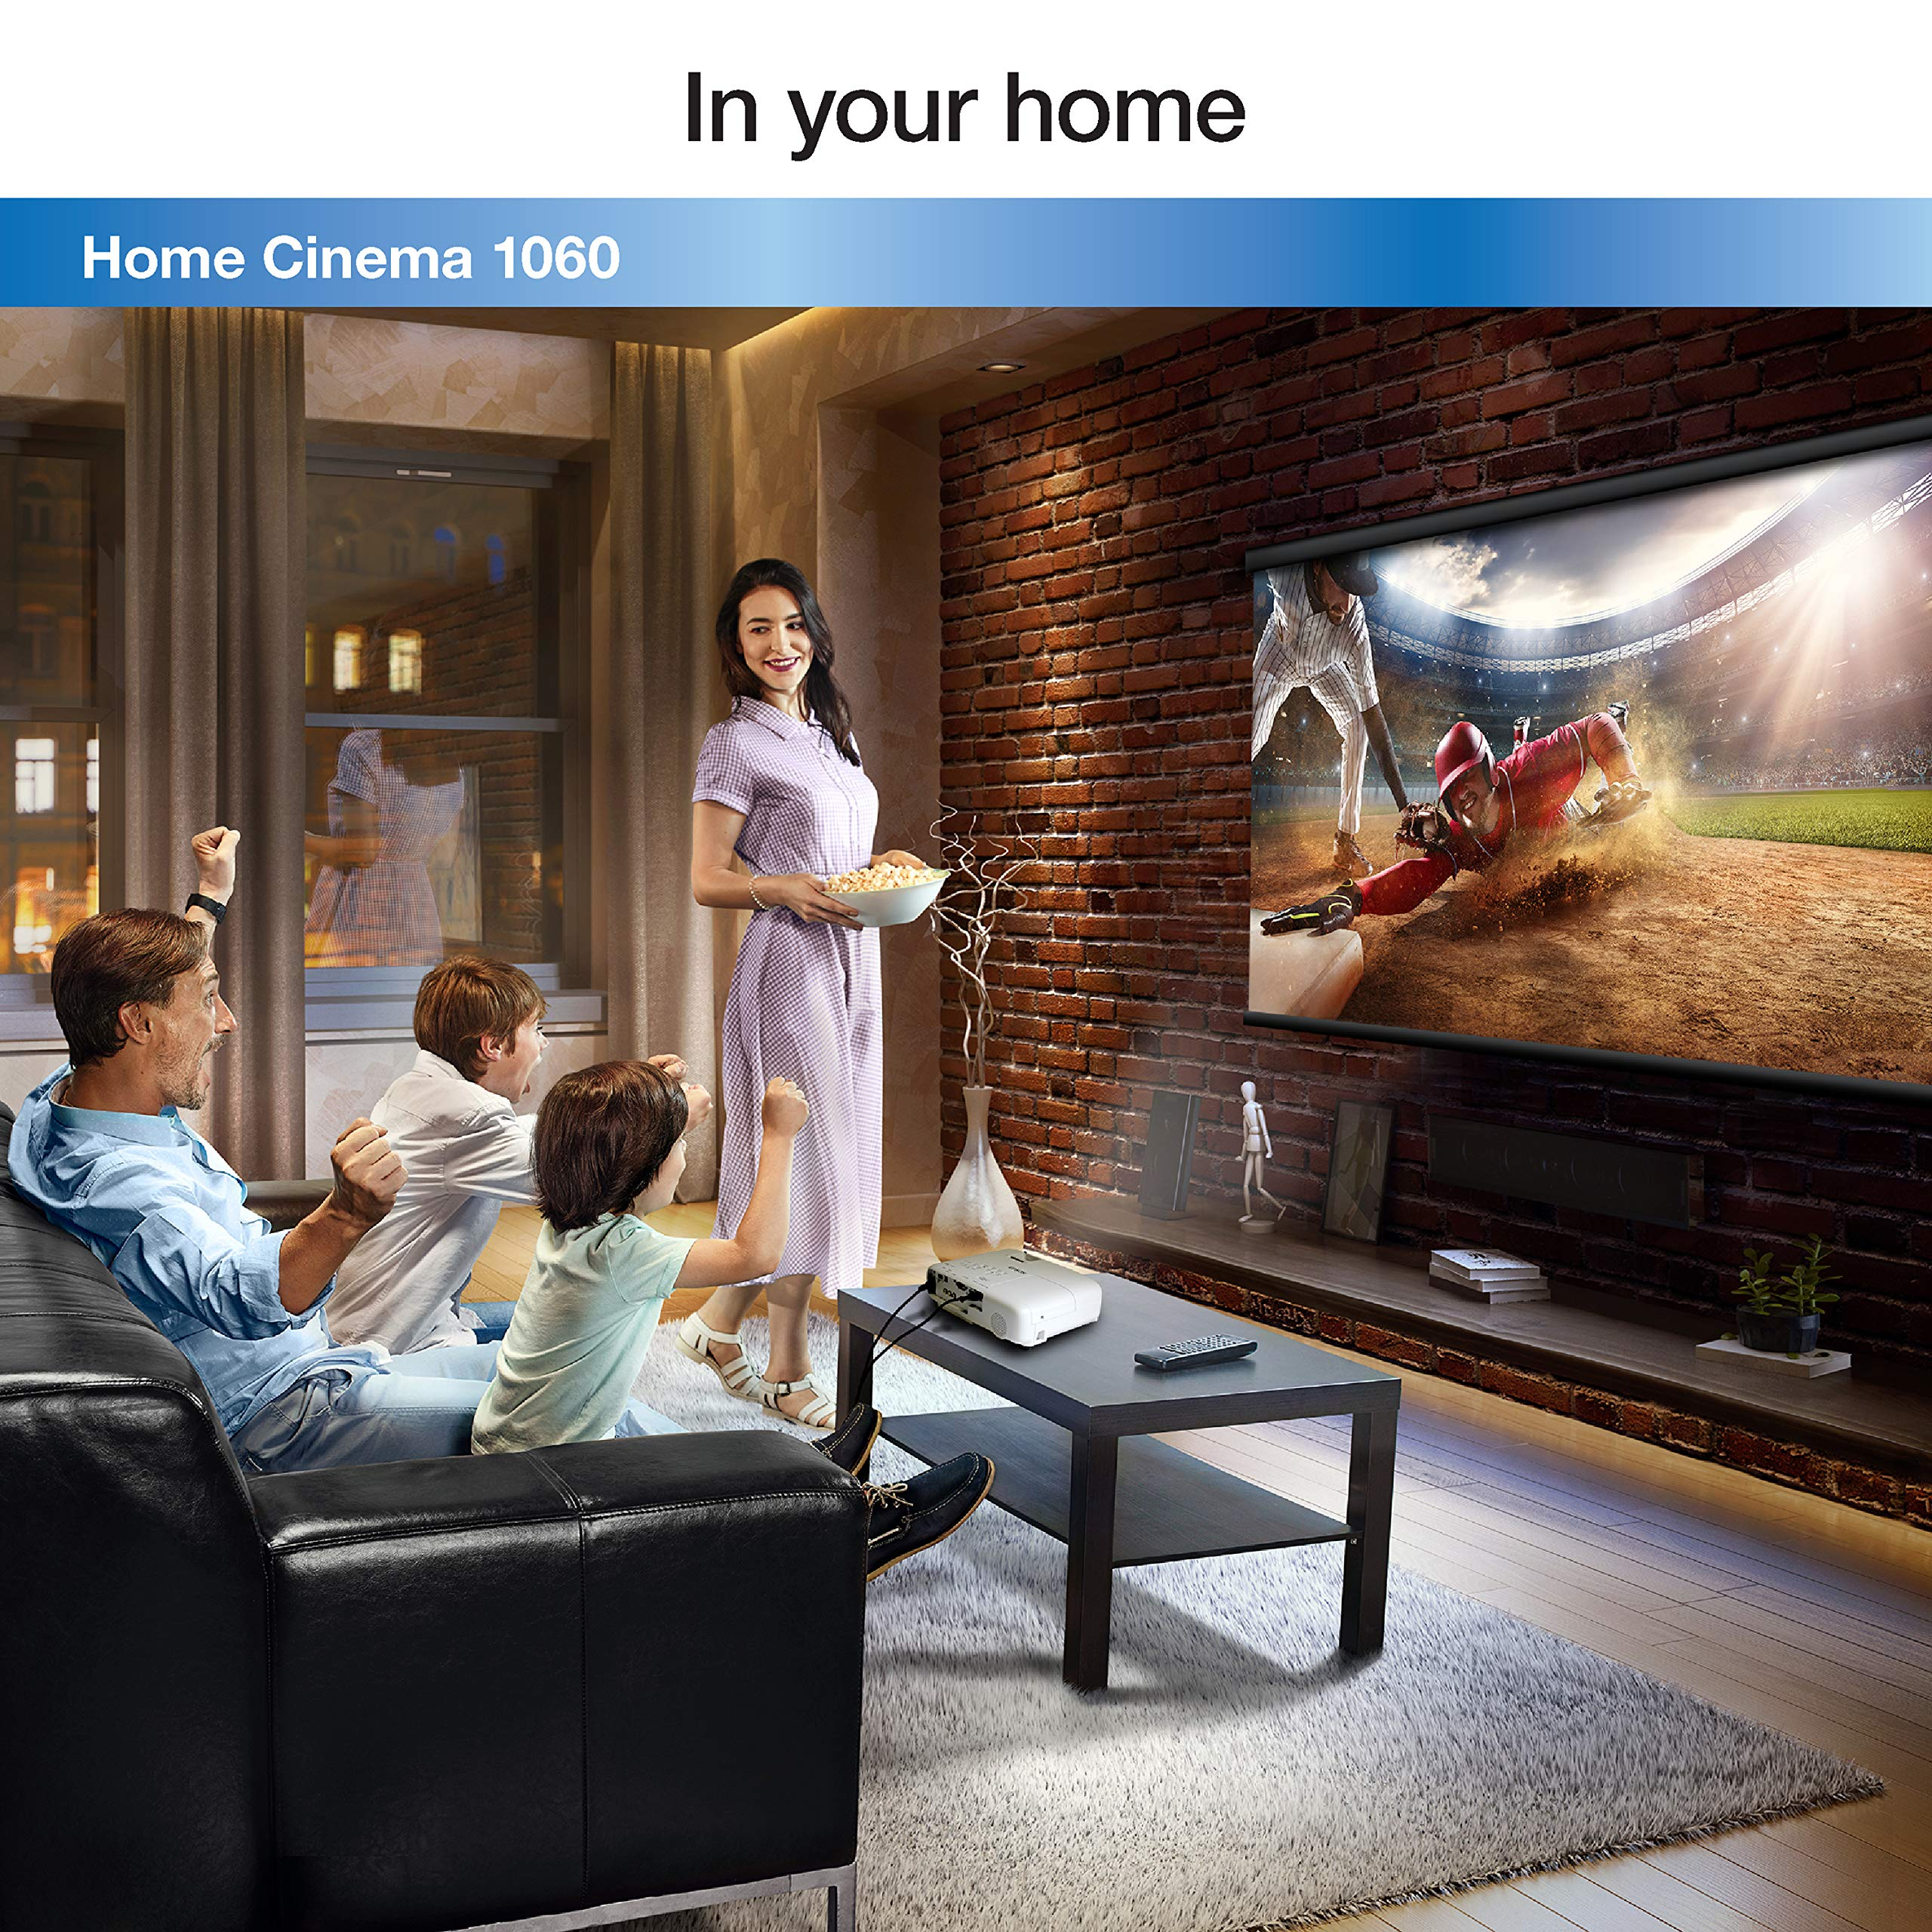 Epson Home Cinema 1060 Full HD 1080p 3,100 lumens Color Brightness (Color Light Output) 3,100 lumens White Brightness (White Light Output) 2X HDMI (1x MHL) Built-in Speakers 3LCD Projector (Renewed) by Epson (Image #5)